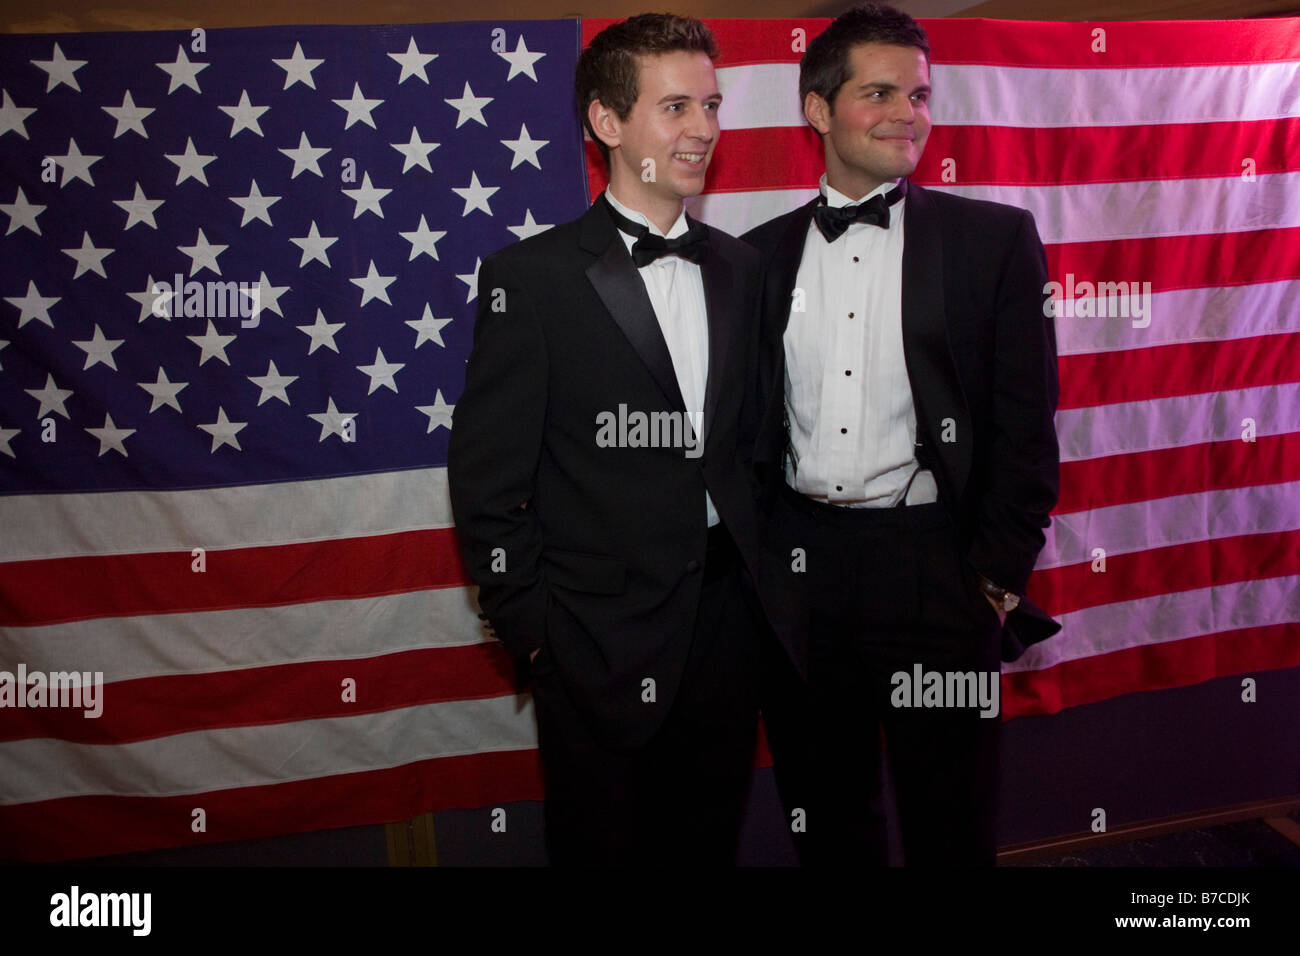 US expatriate citizens gather at a formal ball for Barack Obama's inauguration as the 44th US President in London - Stock Image